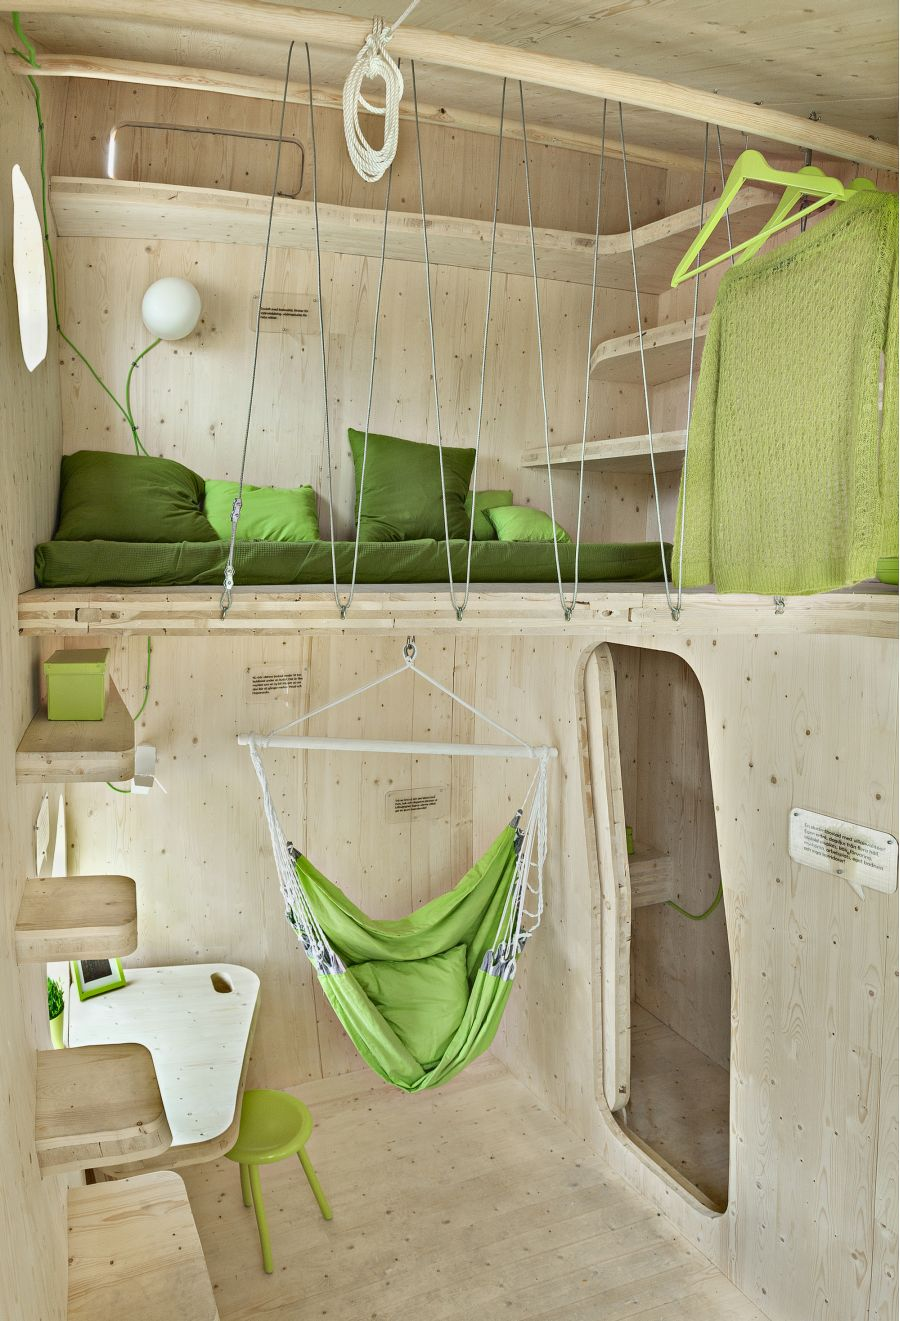 Comfortable sleeping quarters and a hammock